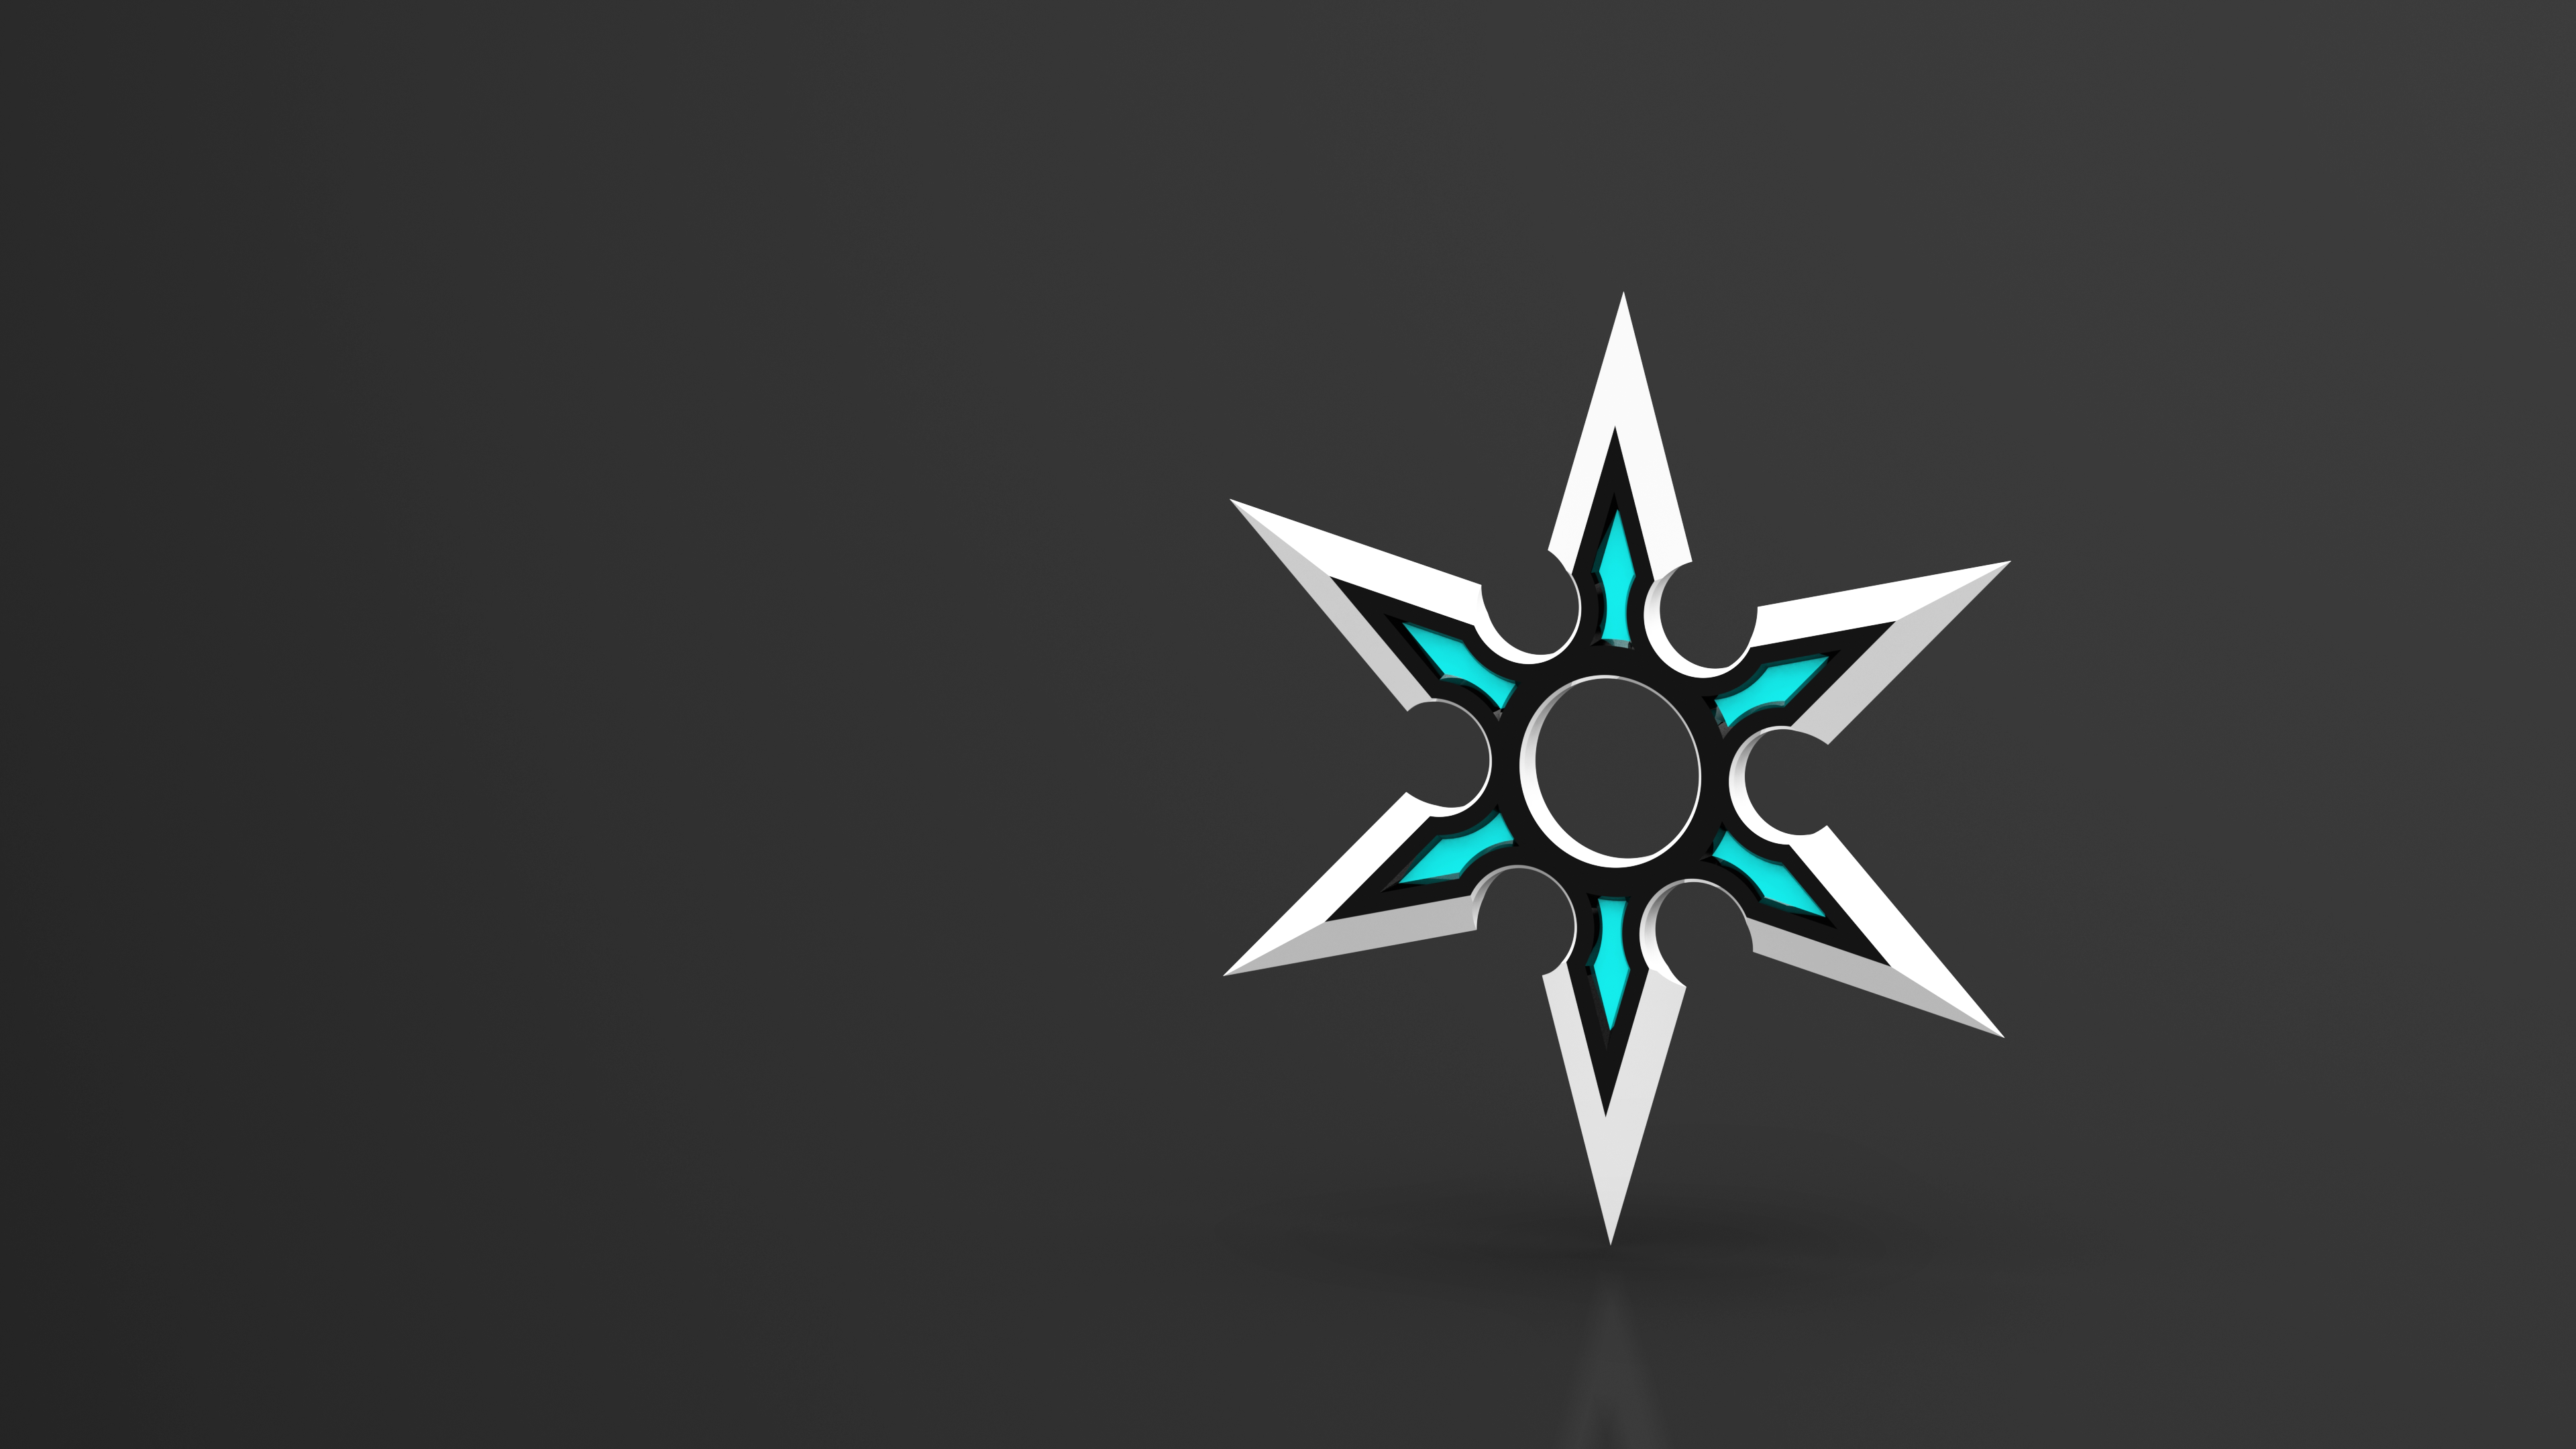 General 3840x2160 3D stars cyan gray background gray simple